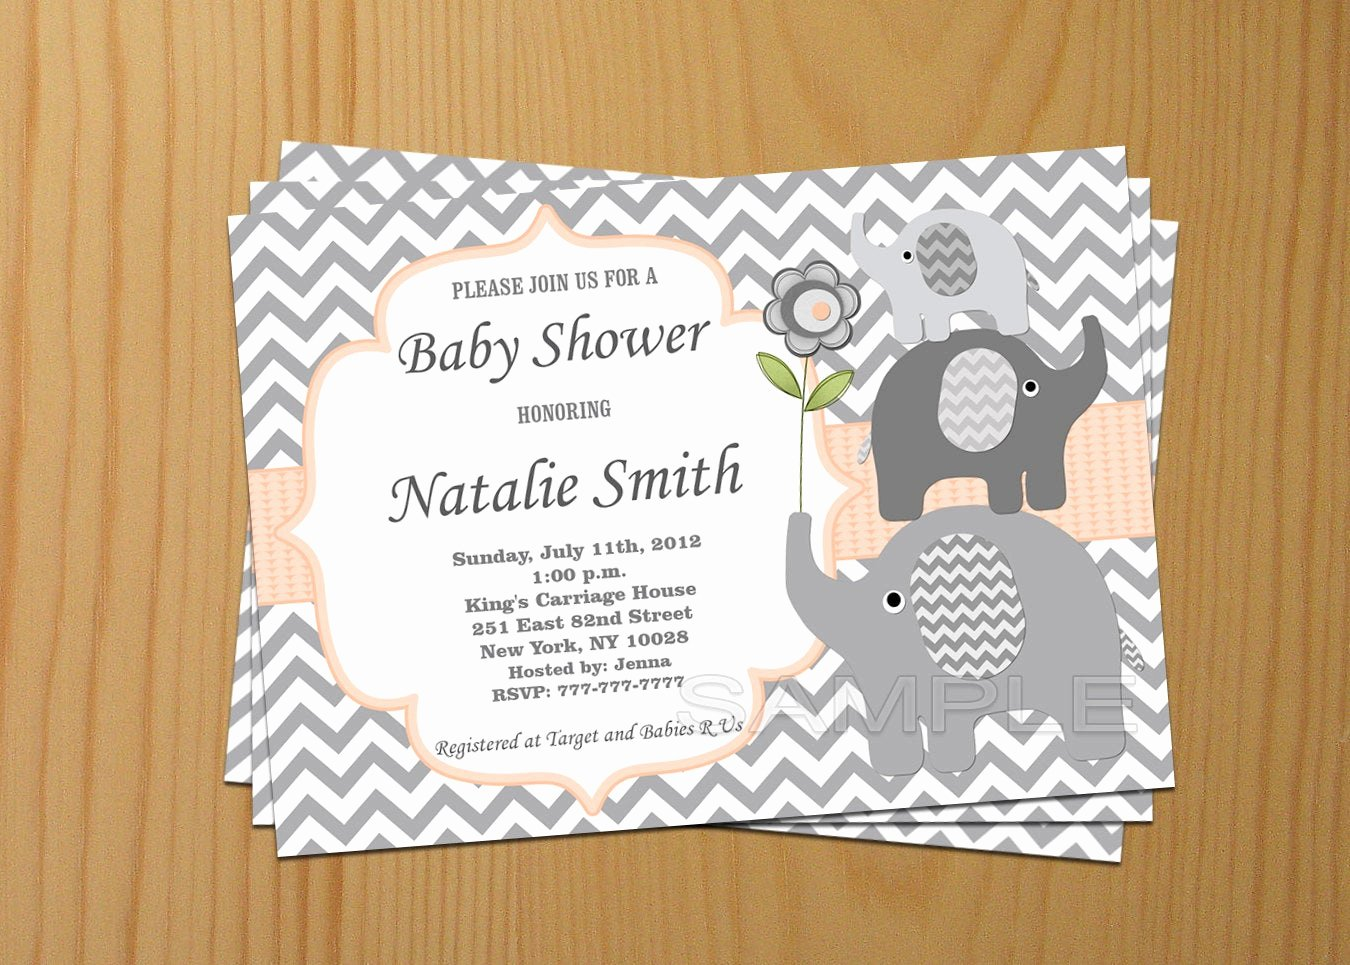 Baby Shower Invitation Free Template Inspirational Editable Baby Shower Invitation Elephant Baby Shower